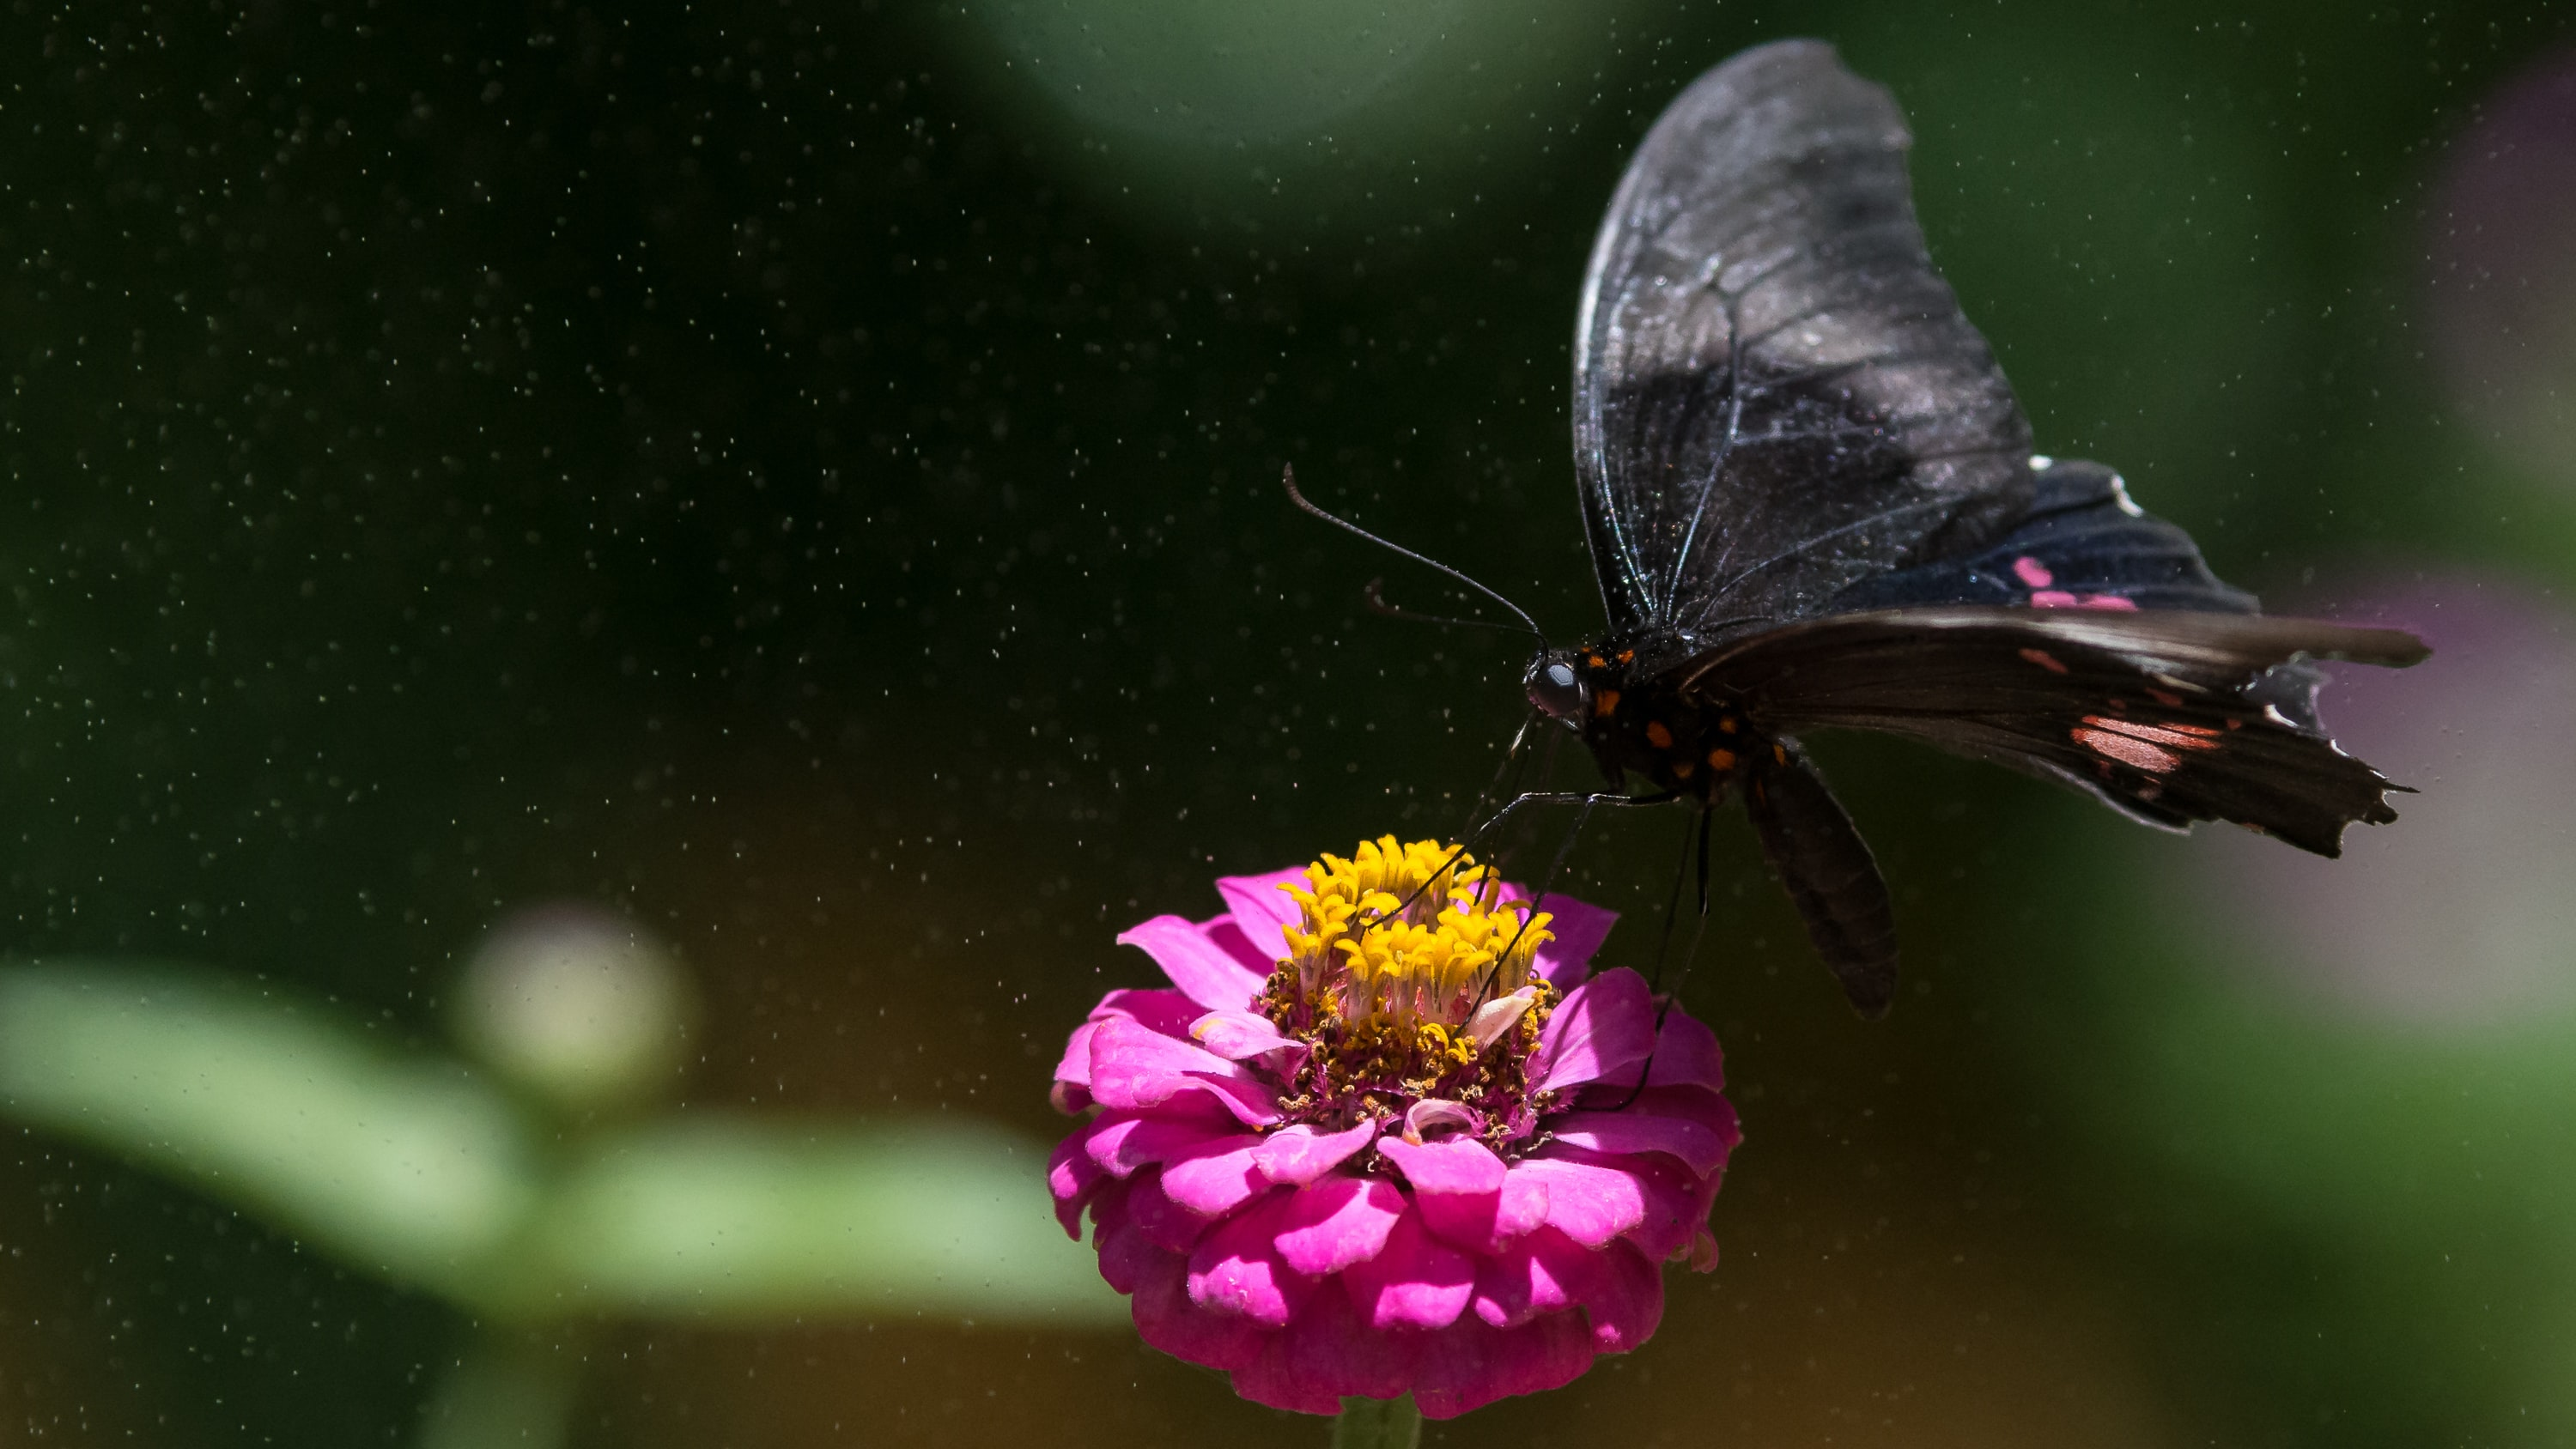 A black butterfly on a bright purple flower